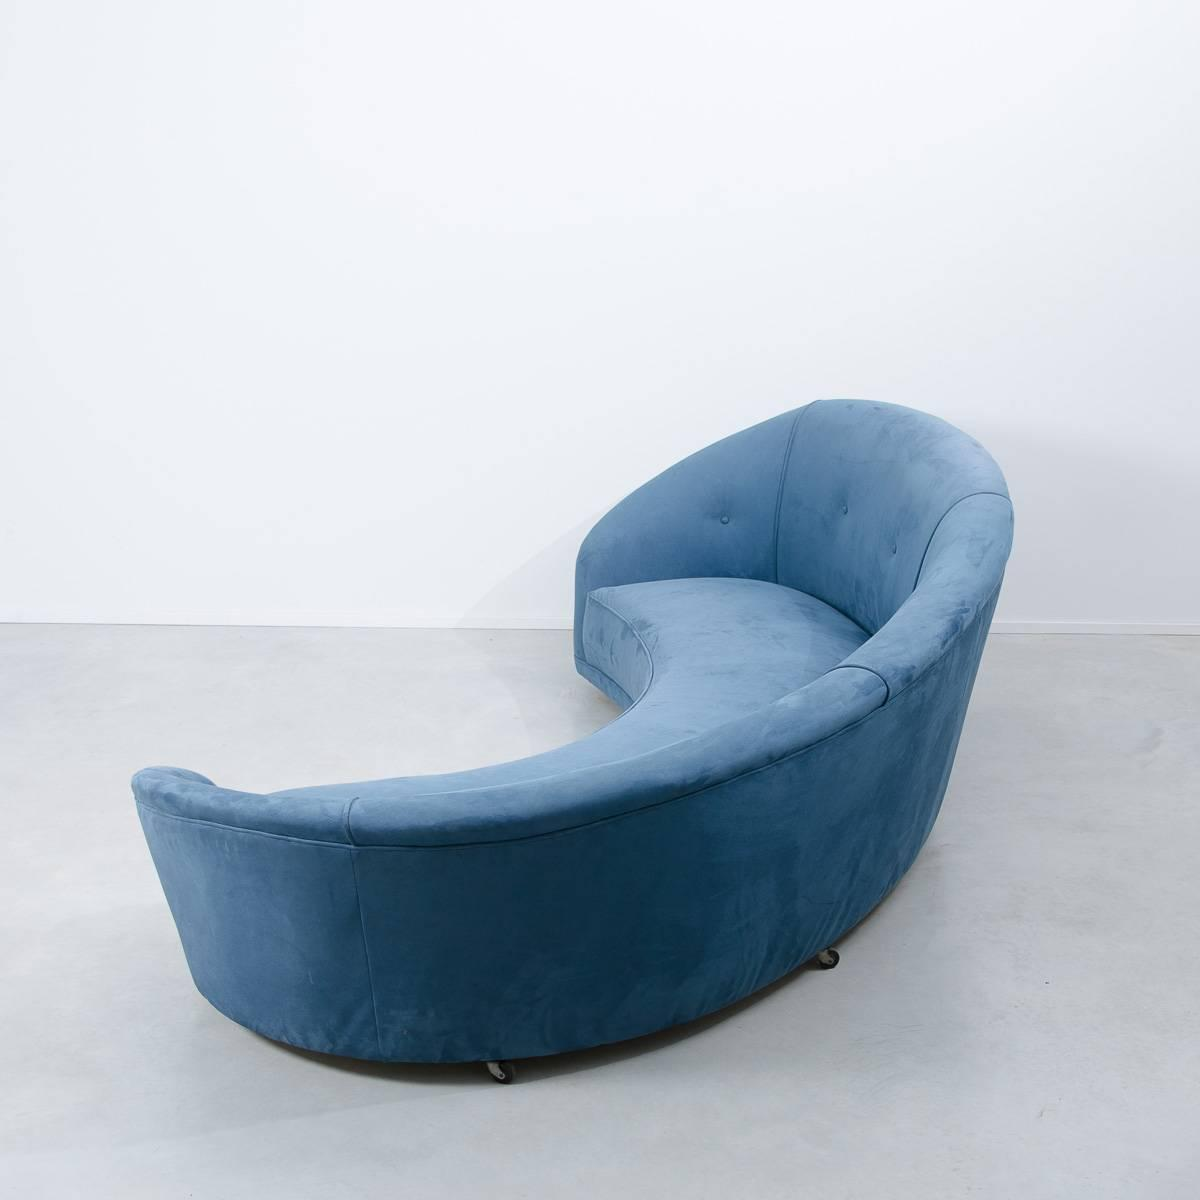 Mid Century Blue Curved Sofa 1970s at 1stdibs : C074Bluecurvedsofa3z from www.1stdibs.com size 1200 x 1200 jpeg 42kB